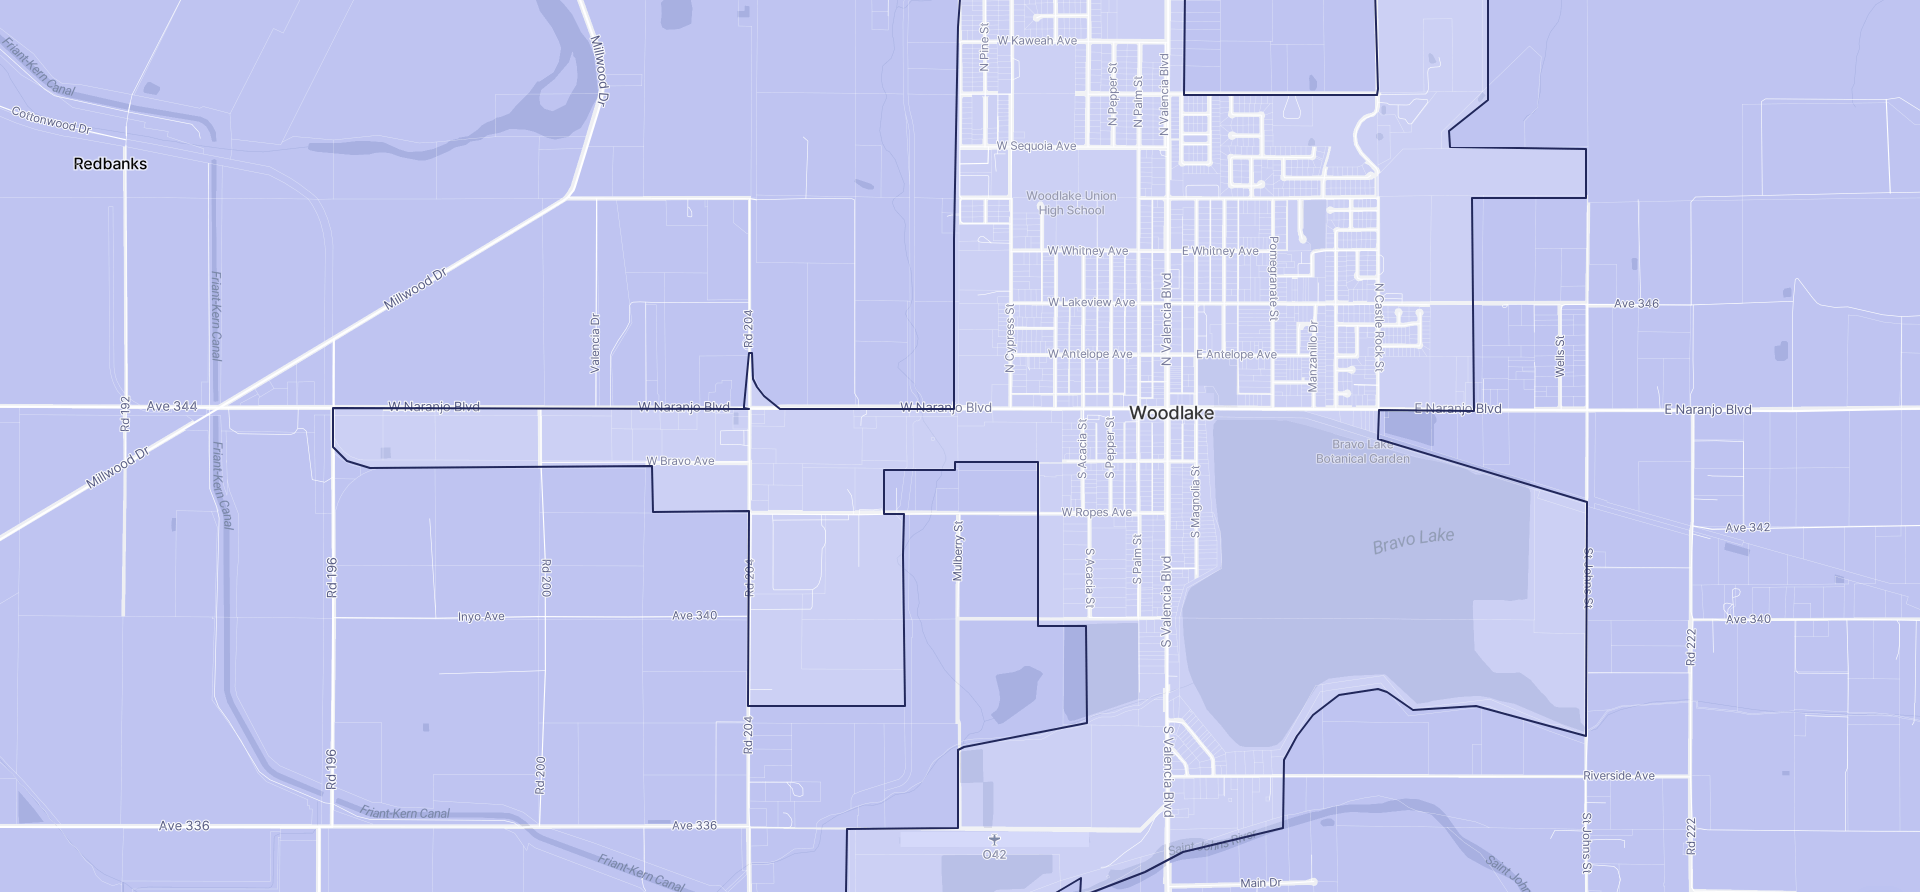 Image of Woodlake boundaries on a map.